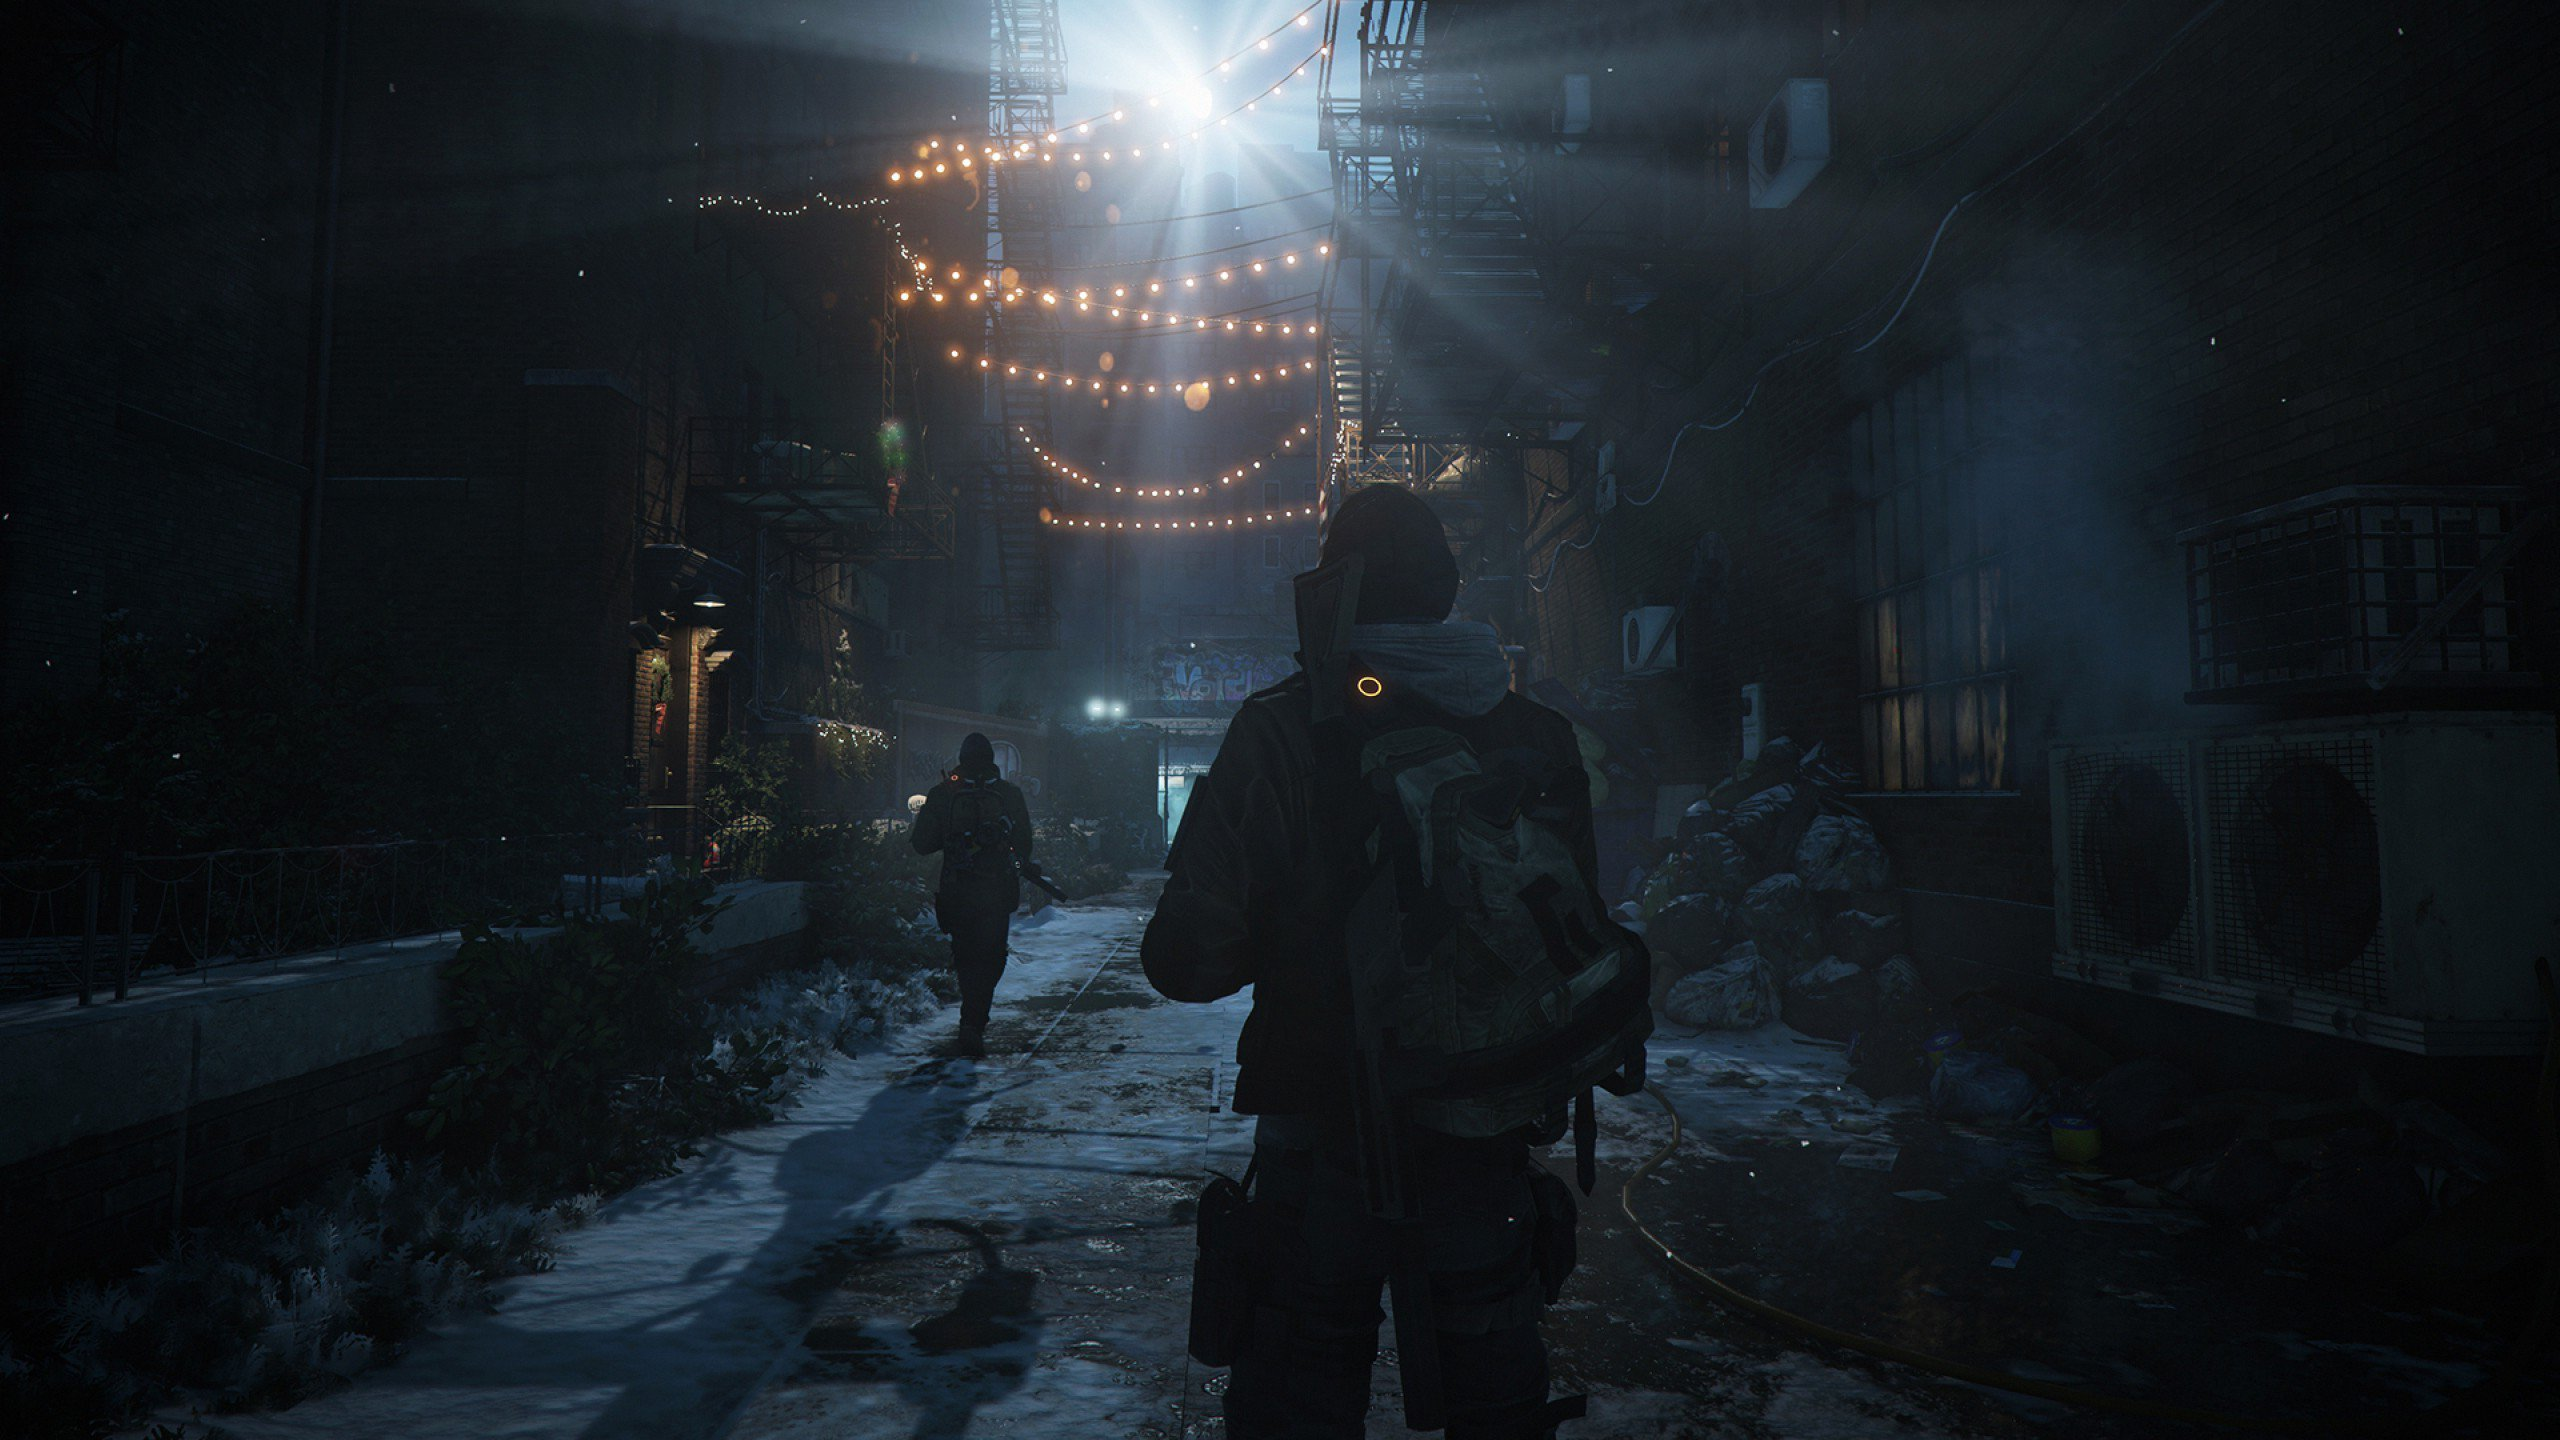 tom clanycs the division latest image.jpg